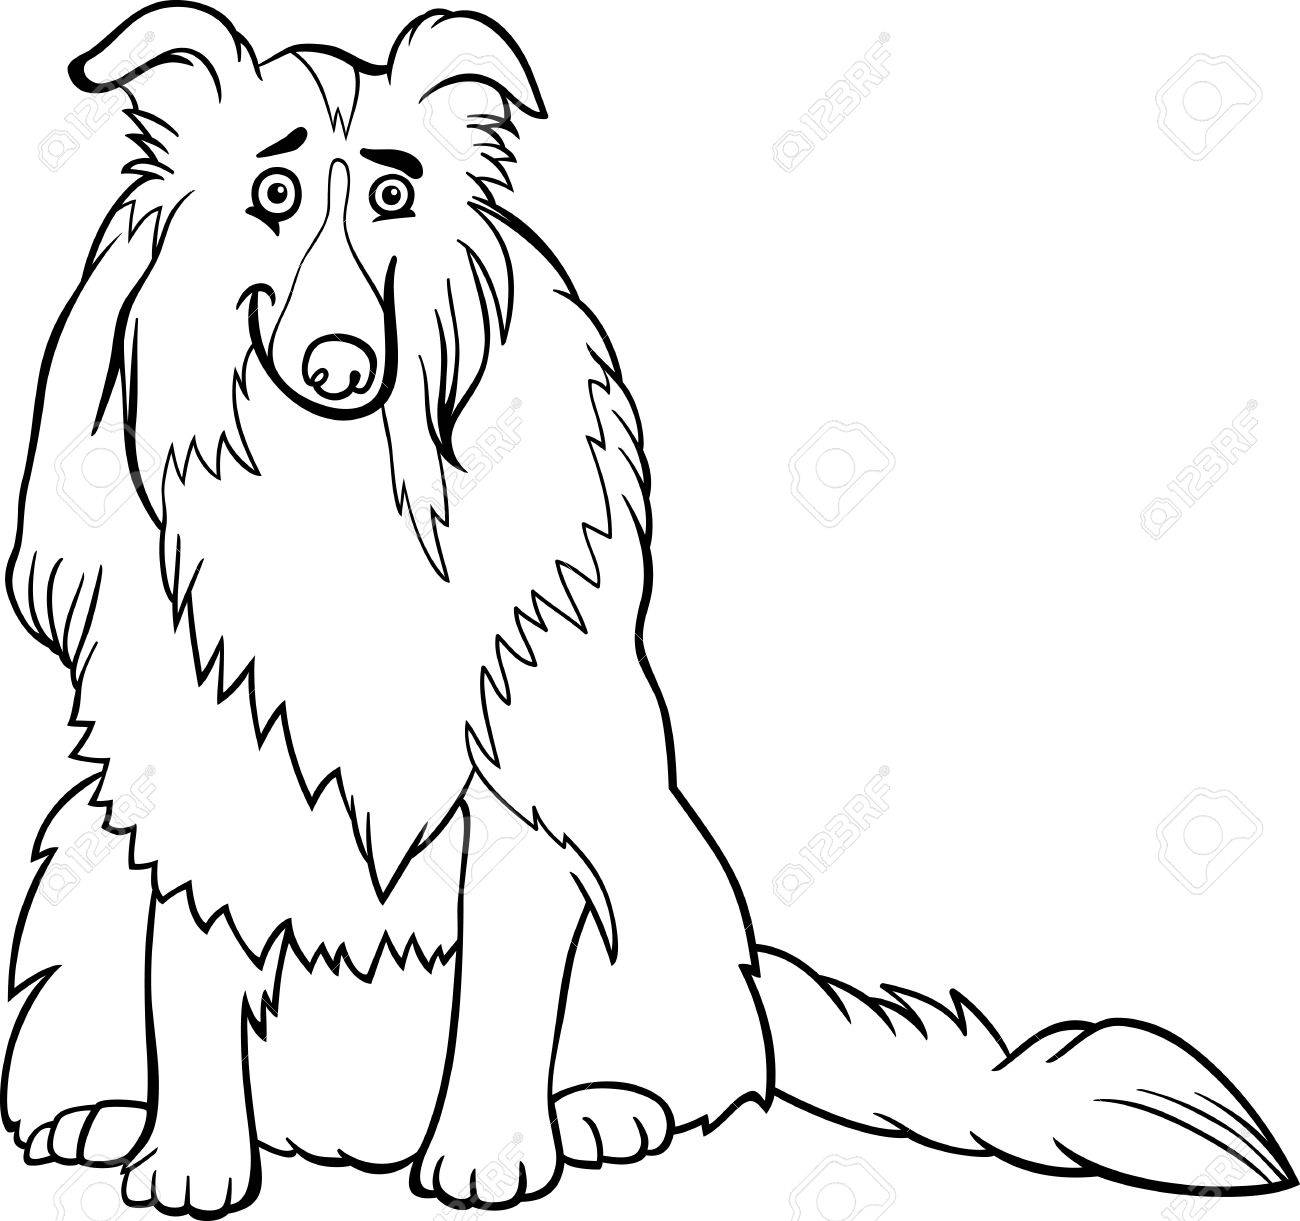 Black and White Cartoon Illustration of Funny Collie Purebred Dog for Coloring Book Stock Vector - 18253267